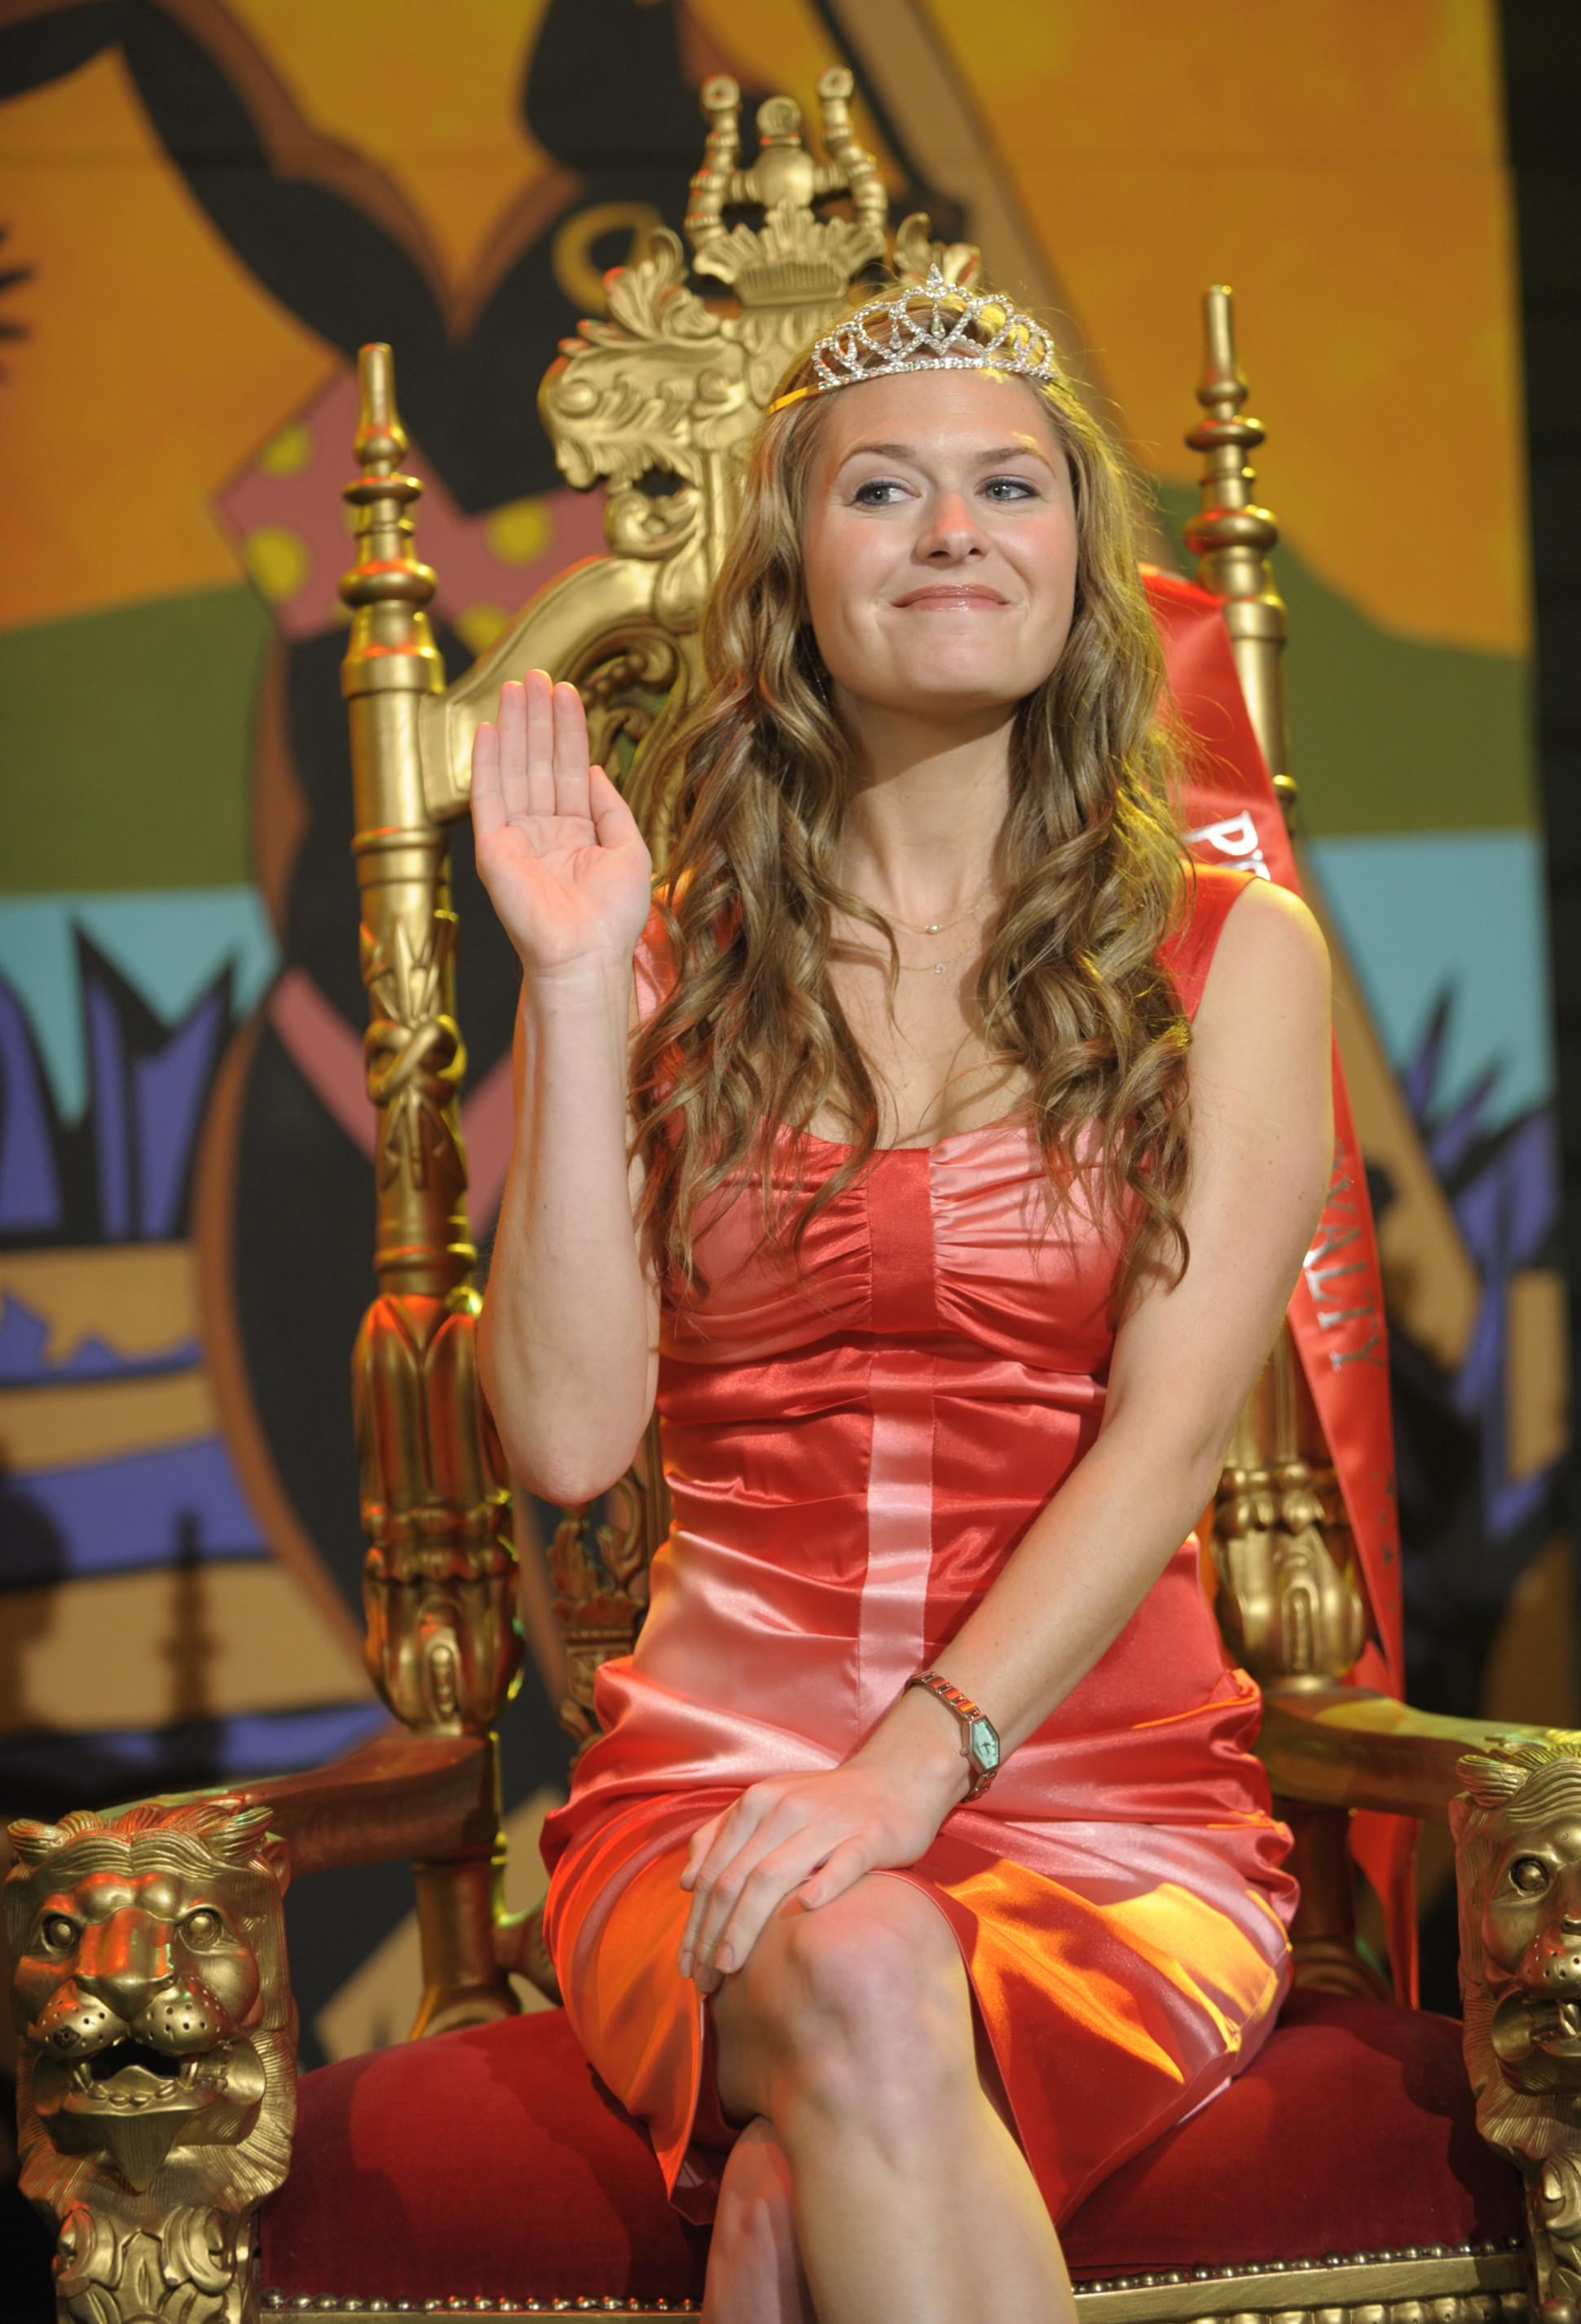 Maggie Lawson Nude Pictures Complete maggie lawson nude, naked - pics and videos - imperiodefamosas